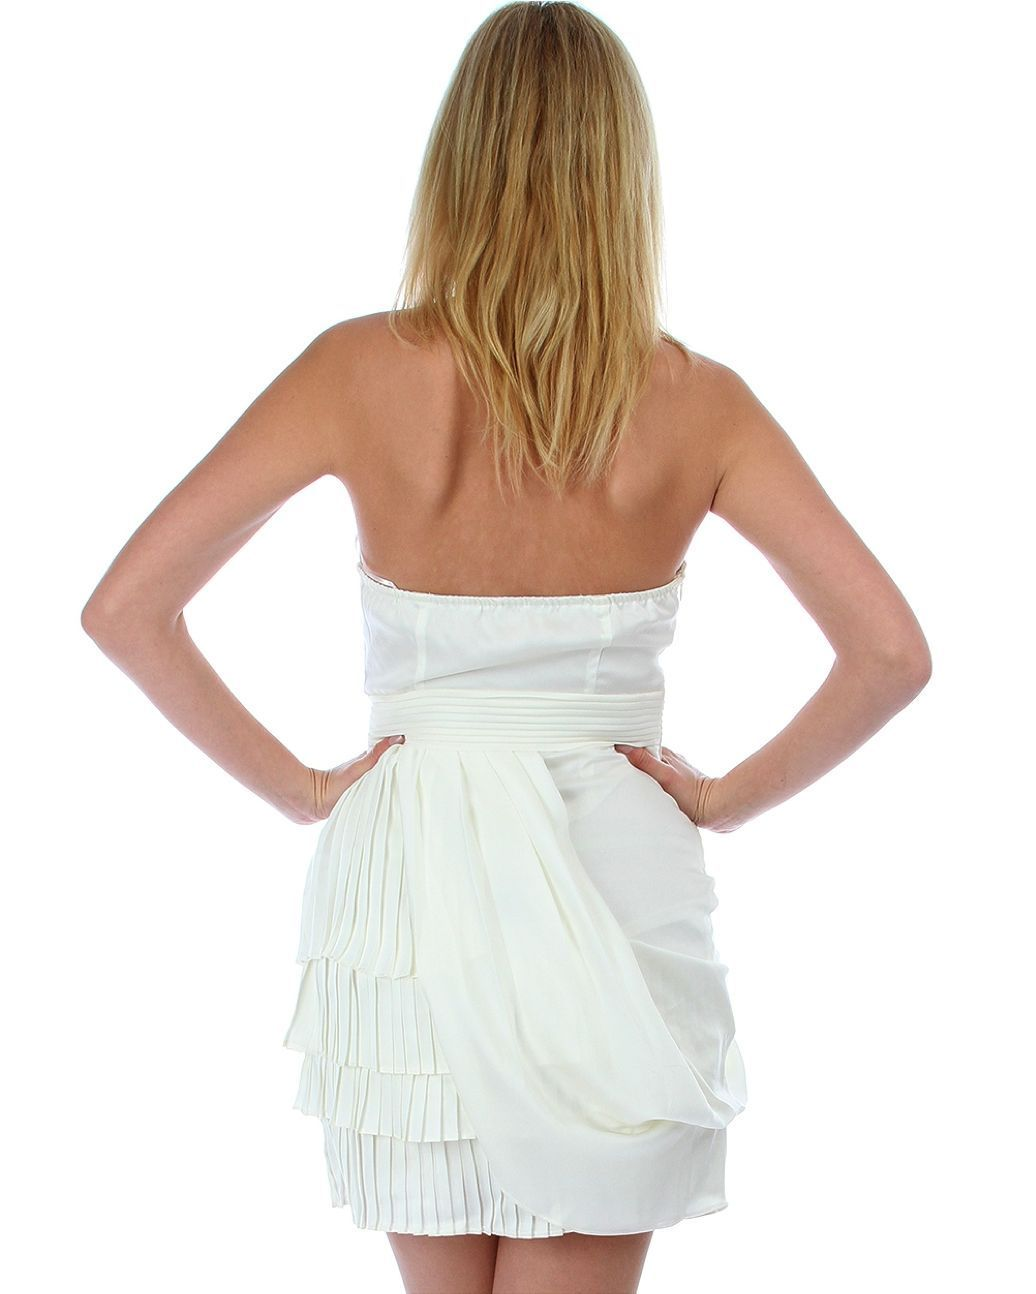 Image 1 of Sexy Juniors Strapless Ivory Tiered Draped Party Cruise Club Mini Dress - Ivory/